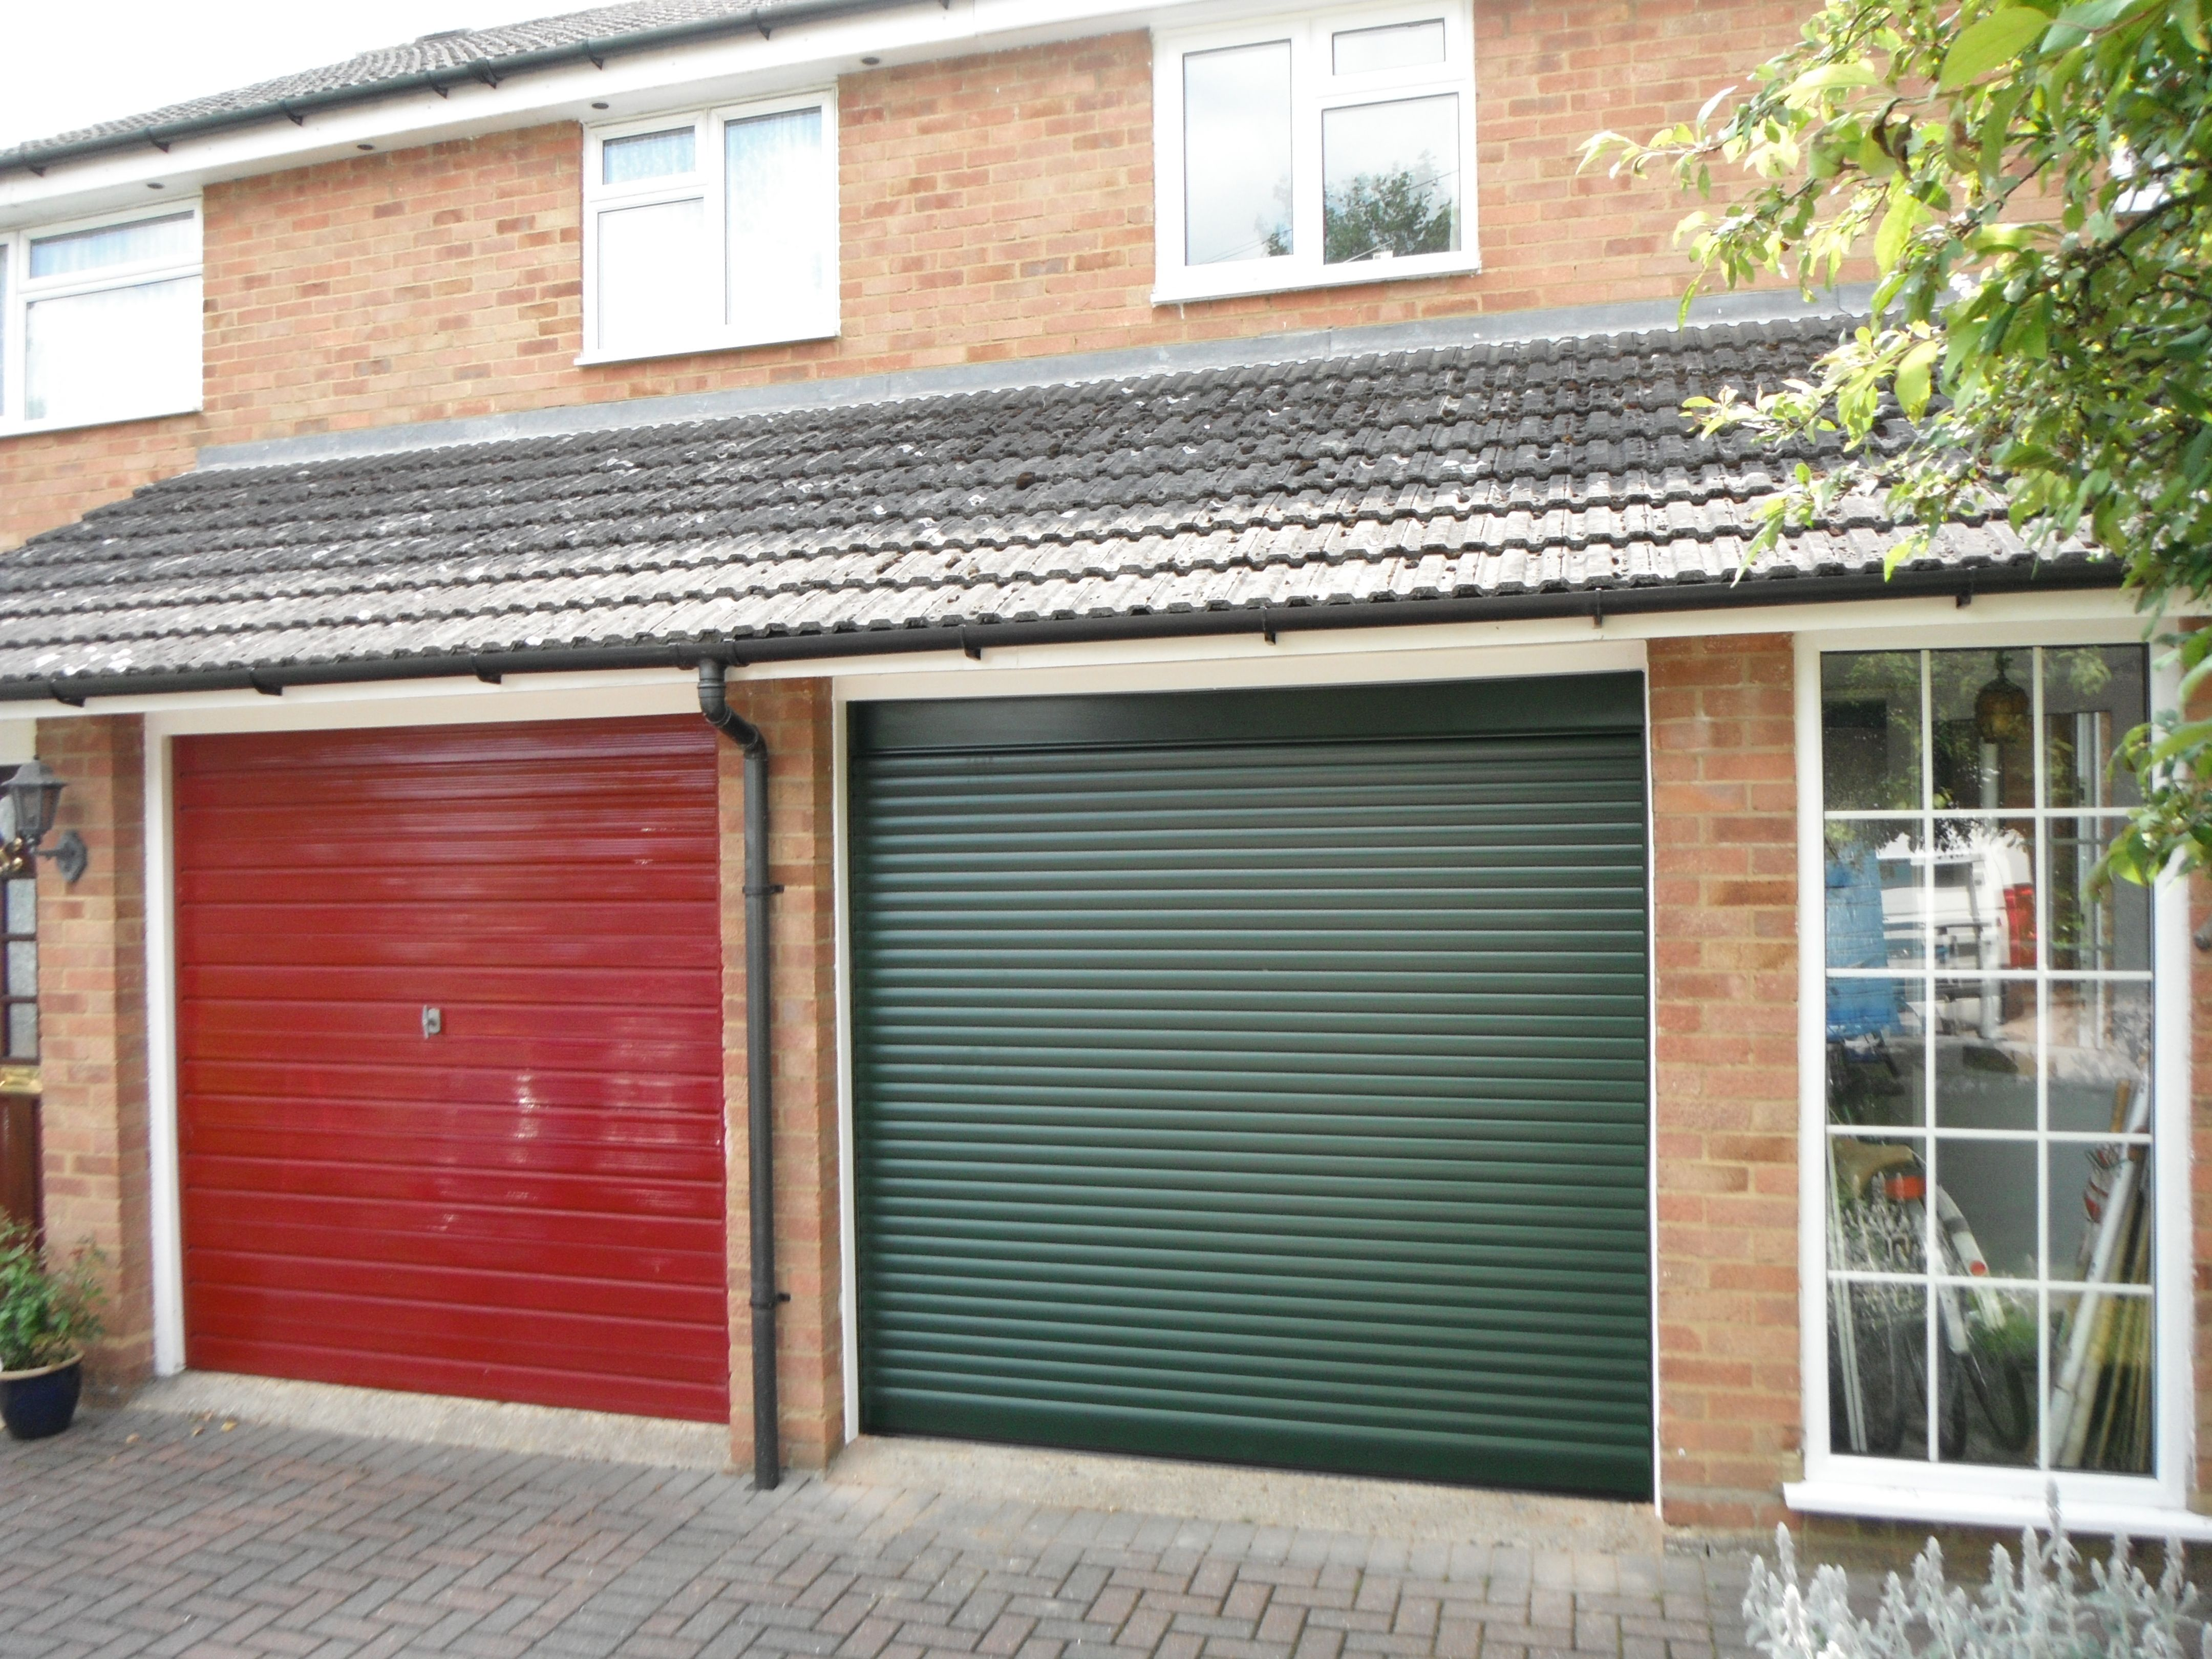 SWS SeceuroGlide Compact Garage Door in Fir Green. This door has been developed especially for garages with severely limited space above the opening. & SWS SeceuroGlide Compact Garage Door in Fir Green. This door has ...